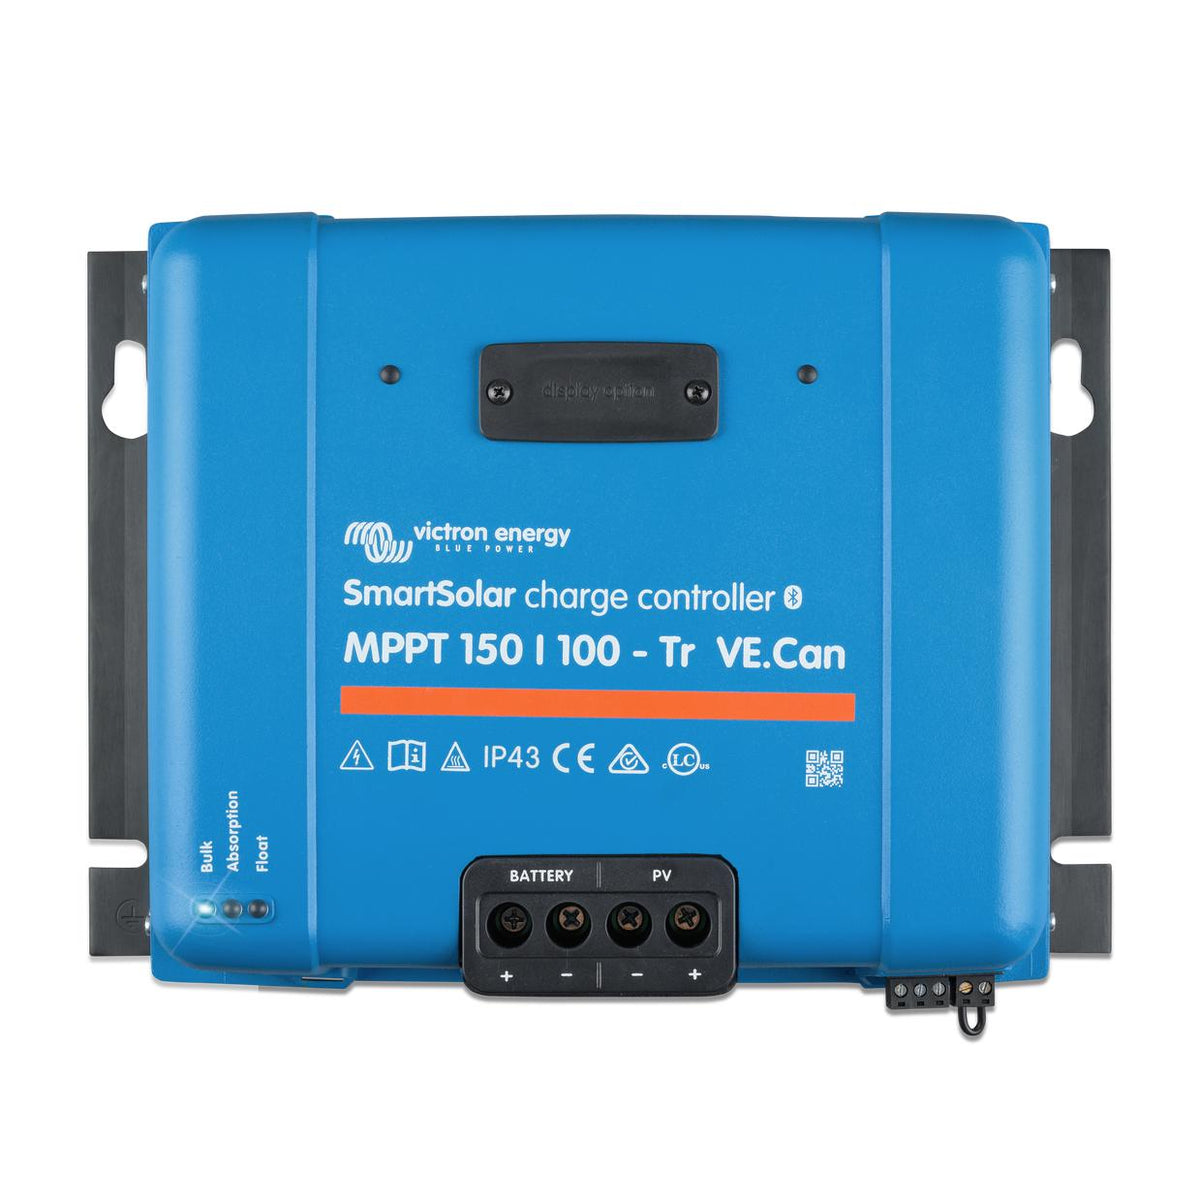 Victron 250/100-Tr MPPT BlueSolar VE.Can SCC125110441